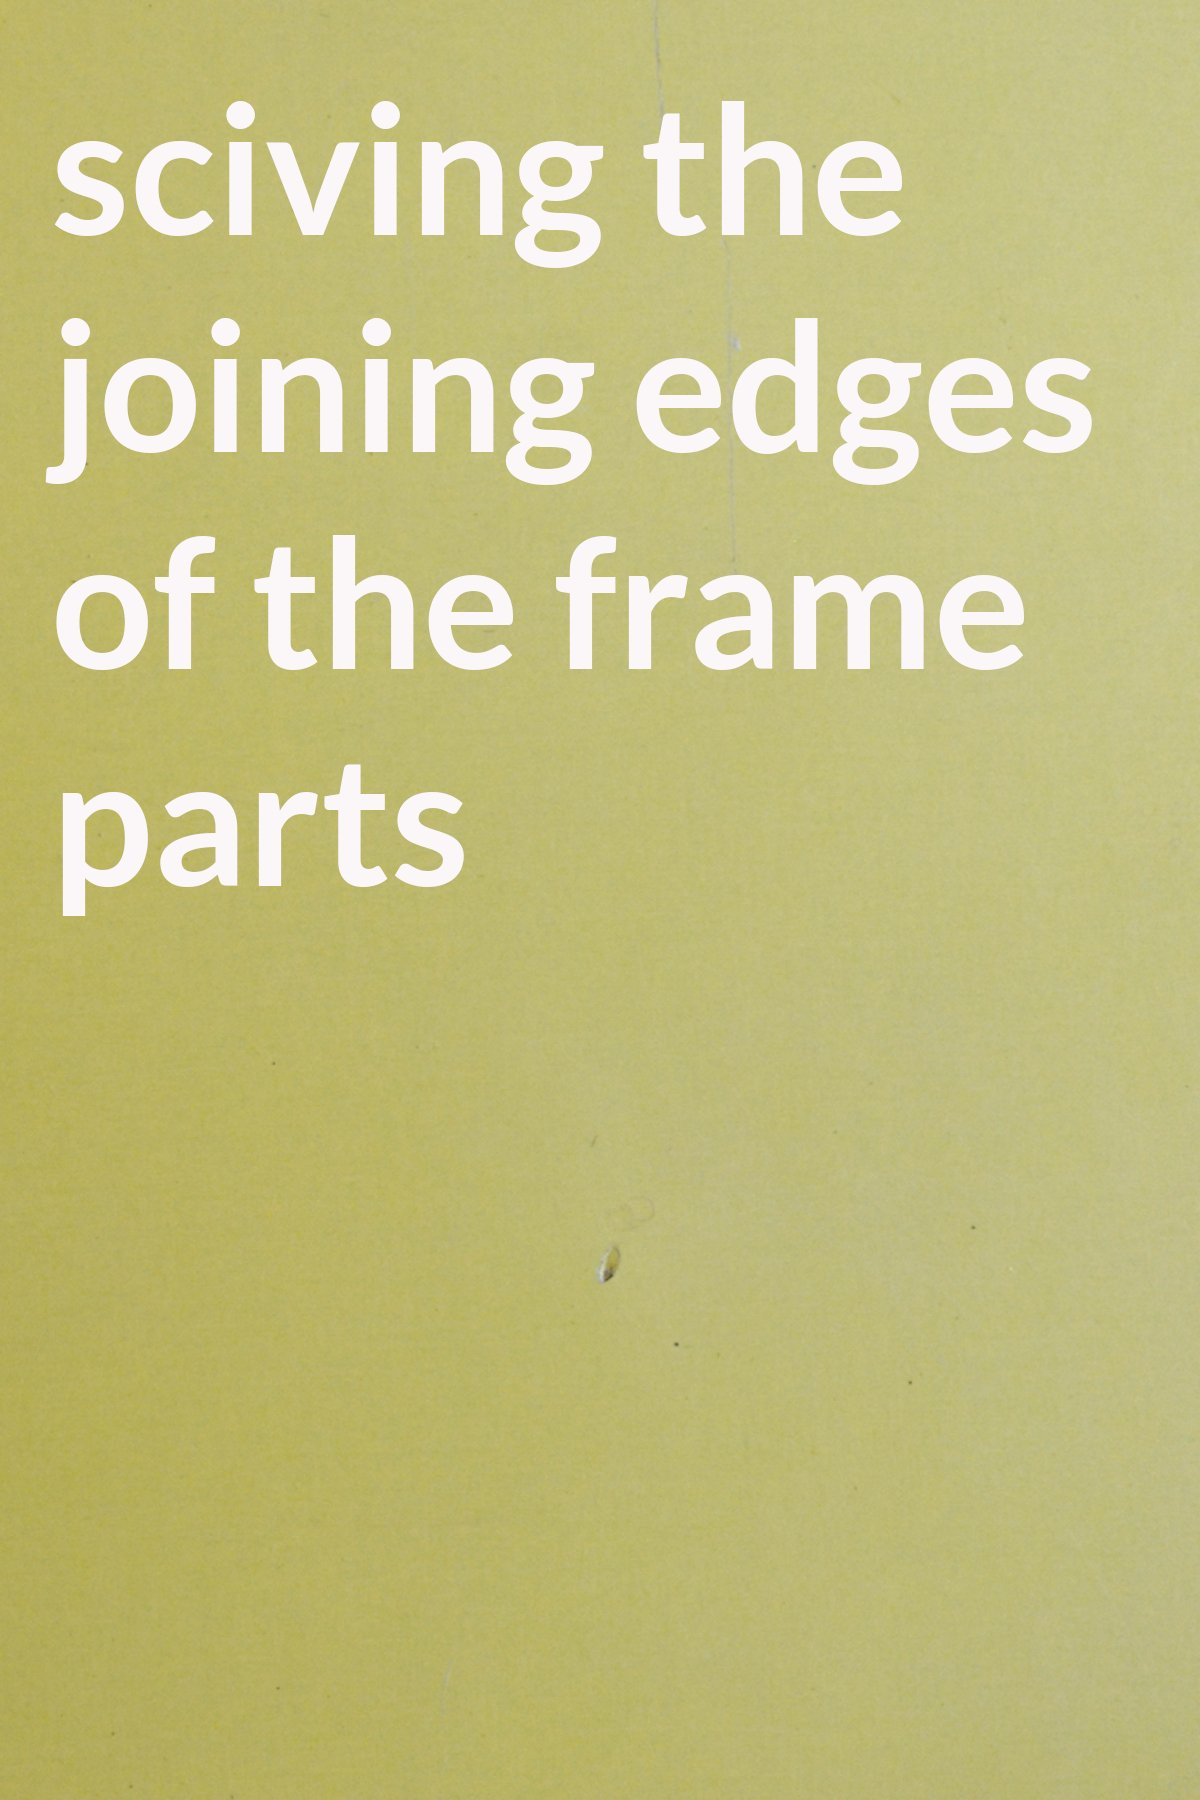 sciving the joining edges of the frame parts